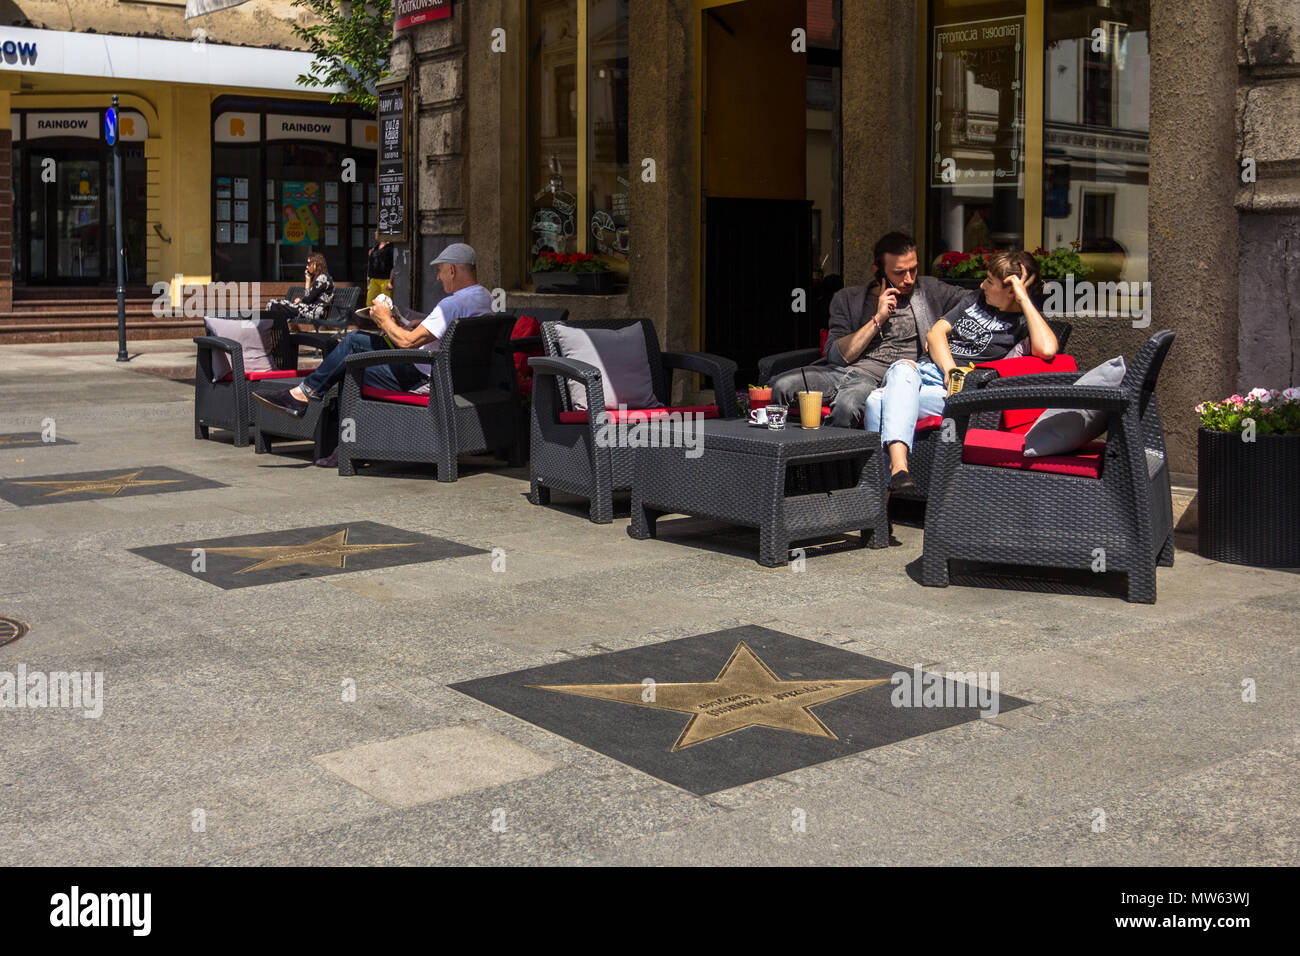 People sitting on chairs outside cafe restaurant in Piotrkowska Street in Łódź, Łódzkie, Poland, showing stars from Łódź Avenue of Fame - Stock Image